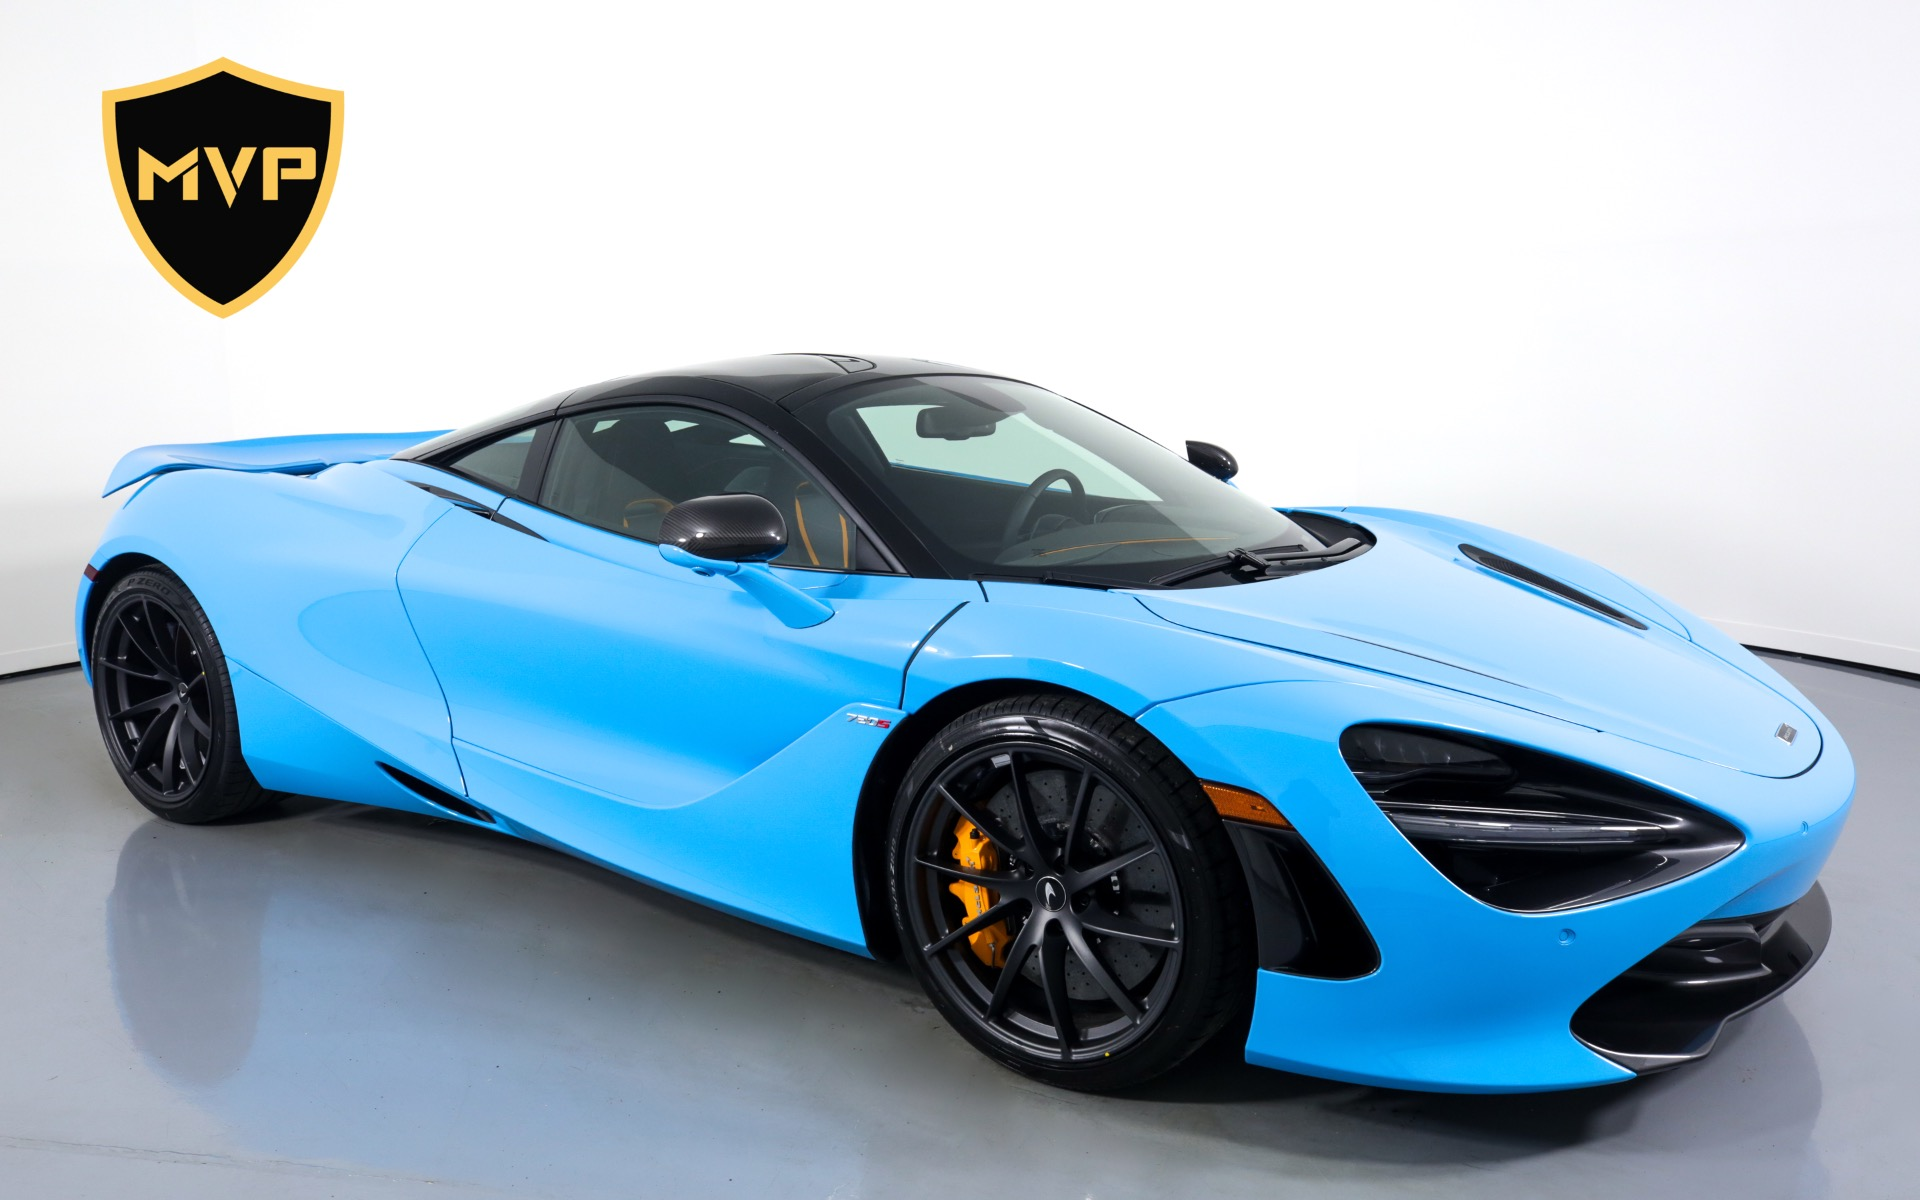 2020 MCLAREN 720S for sale $1,799 at MVP Charlotte in Charlotte NC 28217 1